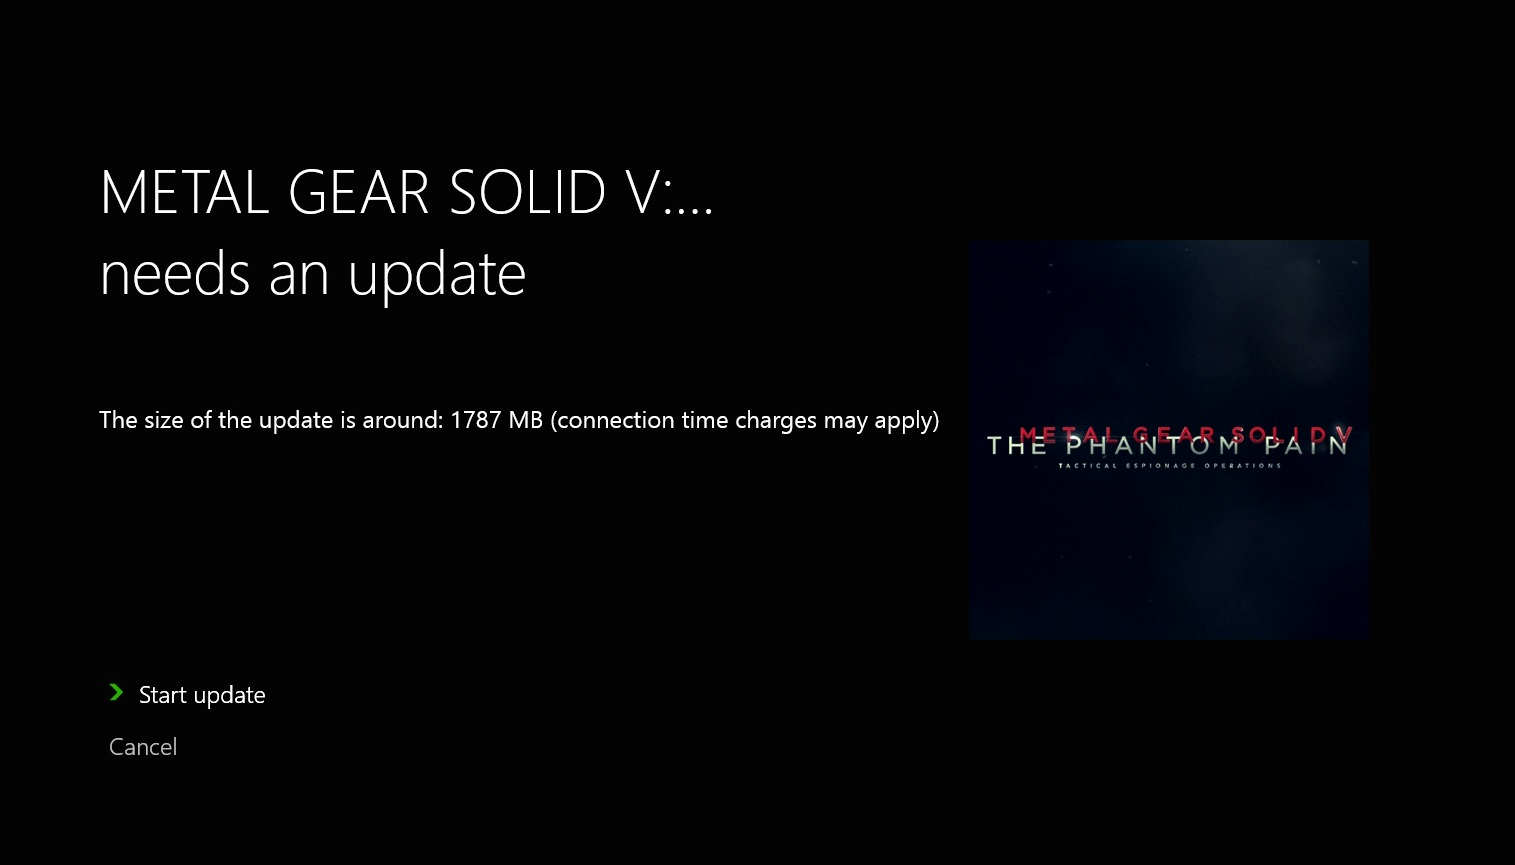 metal gear solid V update